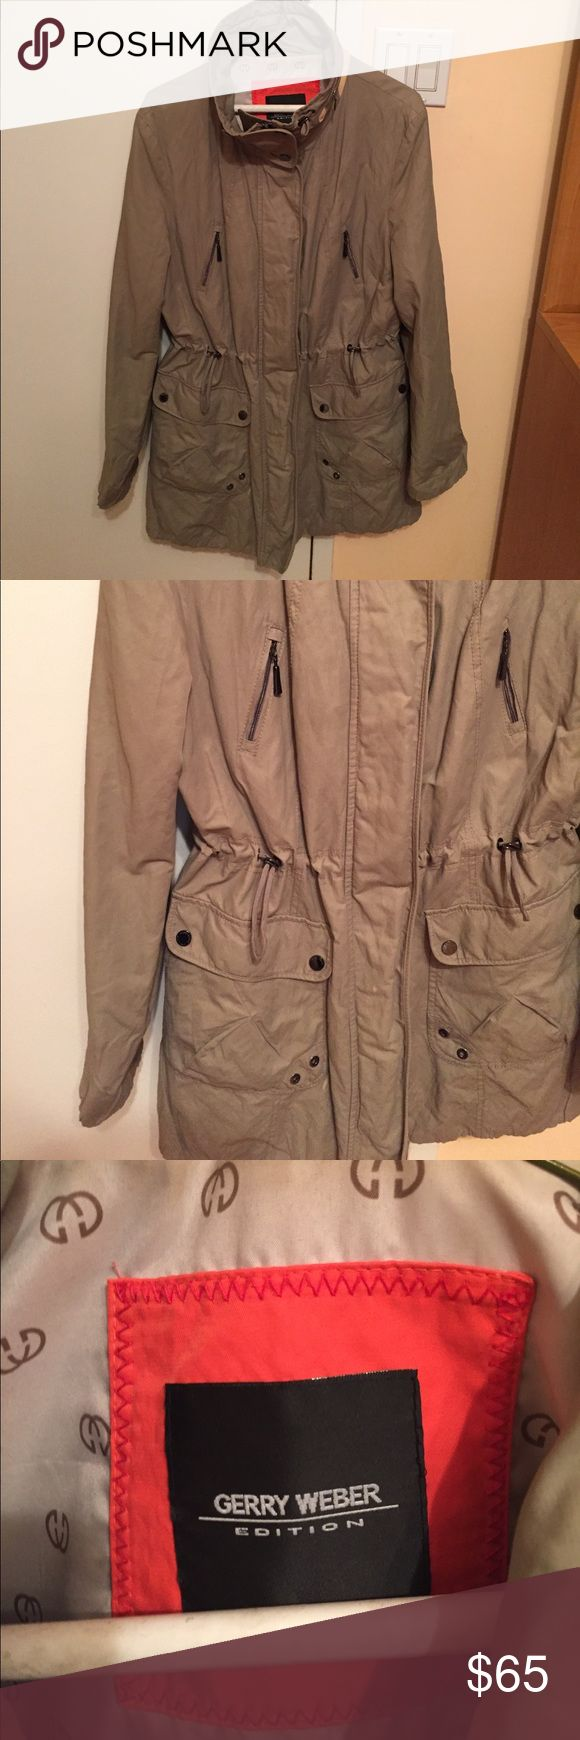 Gerry Weber jacket Gently worn Gerry Weber women's jacket in a size 8. Excellent condition. No stains or rips. Gerry Weber Jackets & Coats Trench Coats